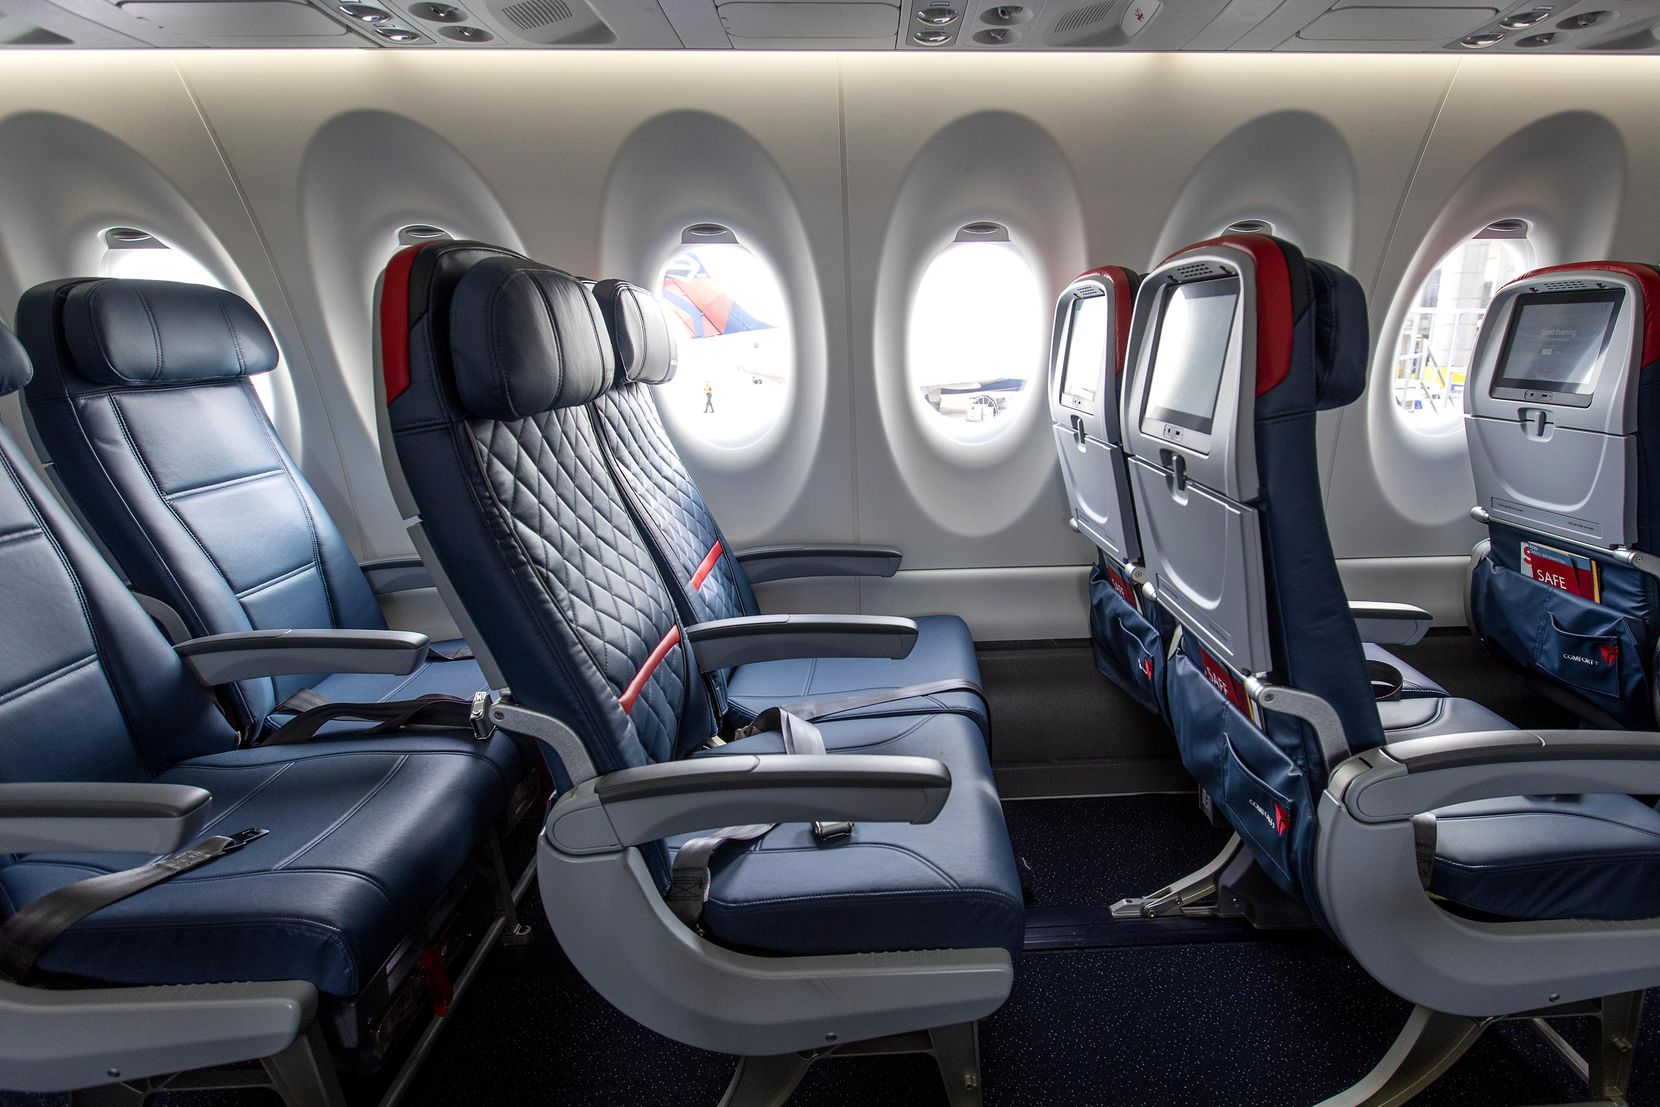 Economy class (left) and Comfort+ (center and right) rows of seating on Delta's new Airbus A220-100 airplane.